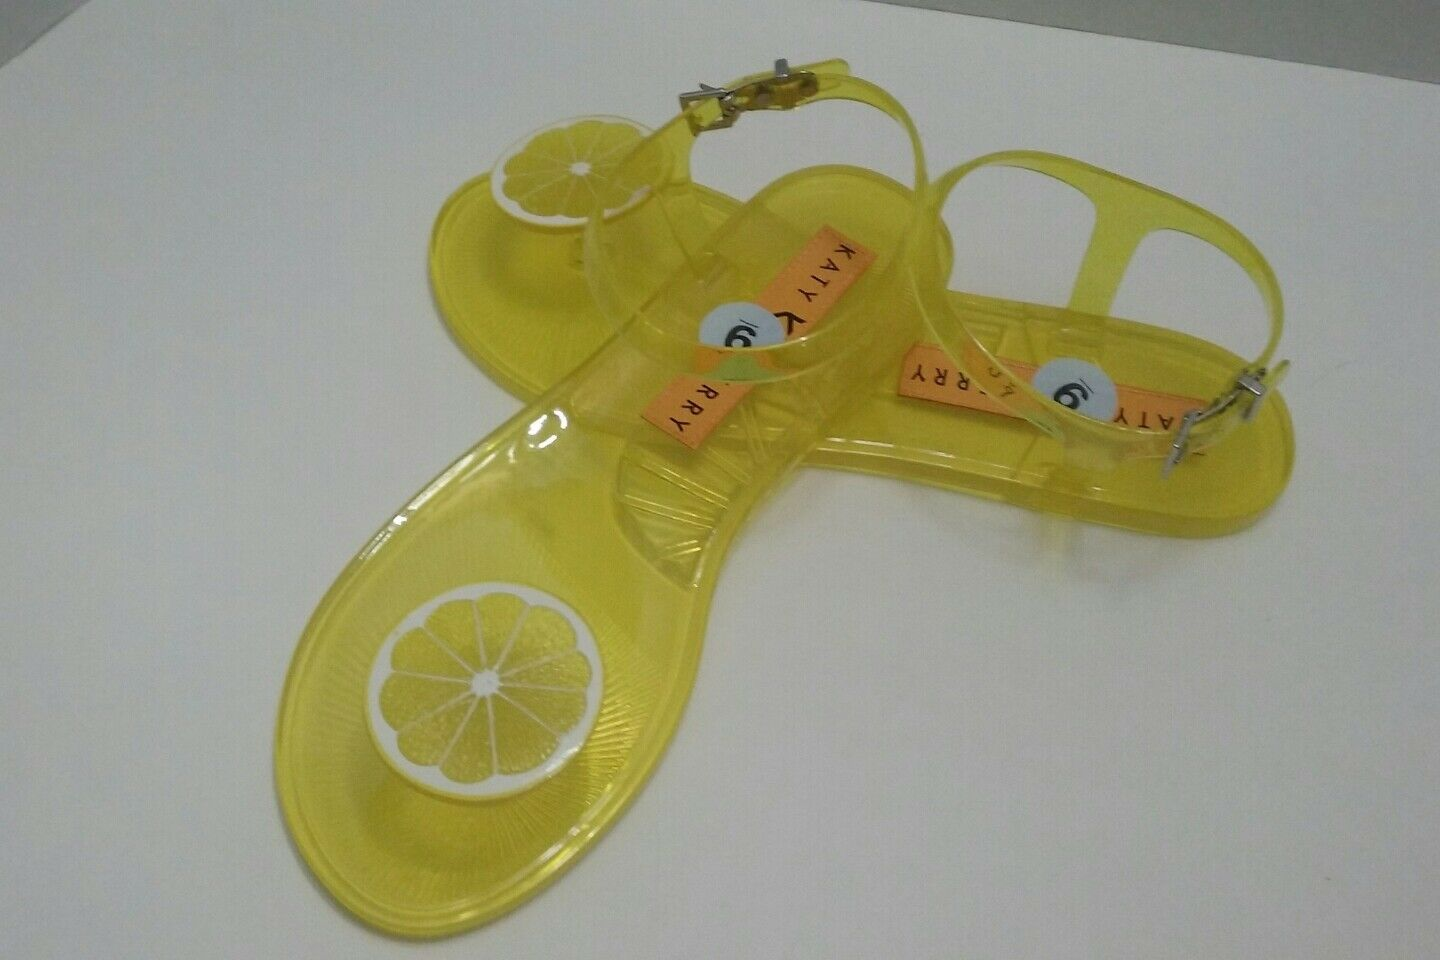 Katy Perry Geli Lemon Flat Sandal SZ 9 US Rare Sold Out Fruit Scented NEW Yellow